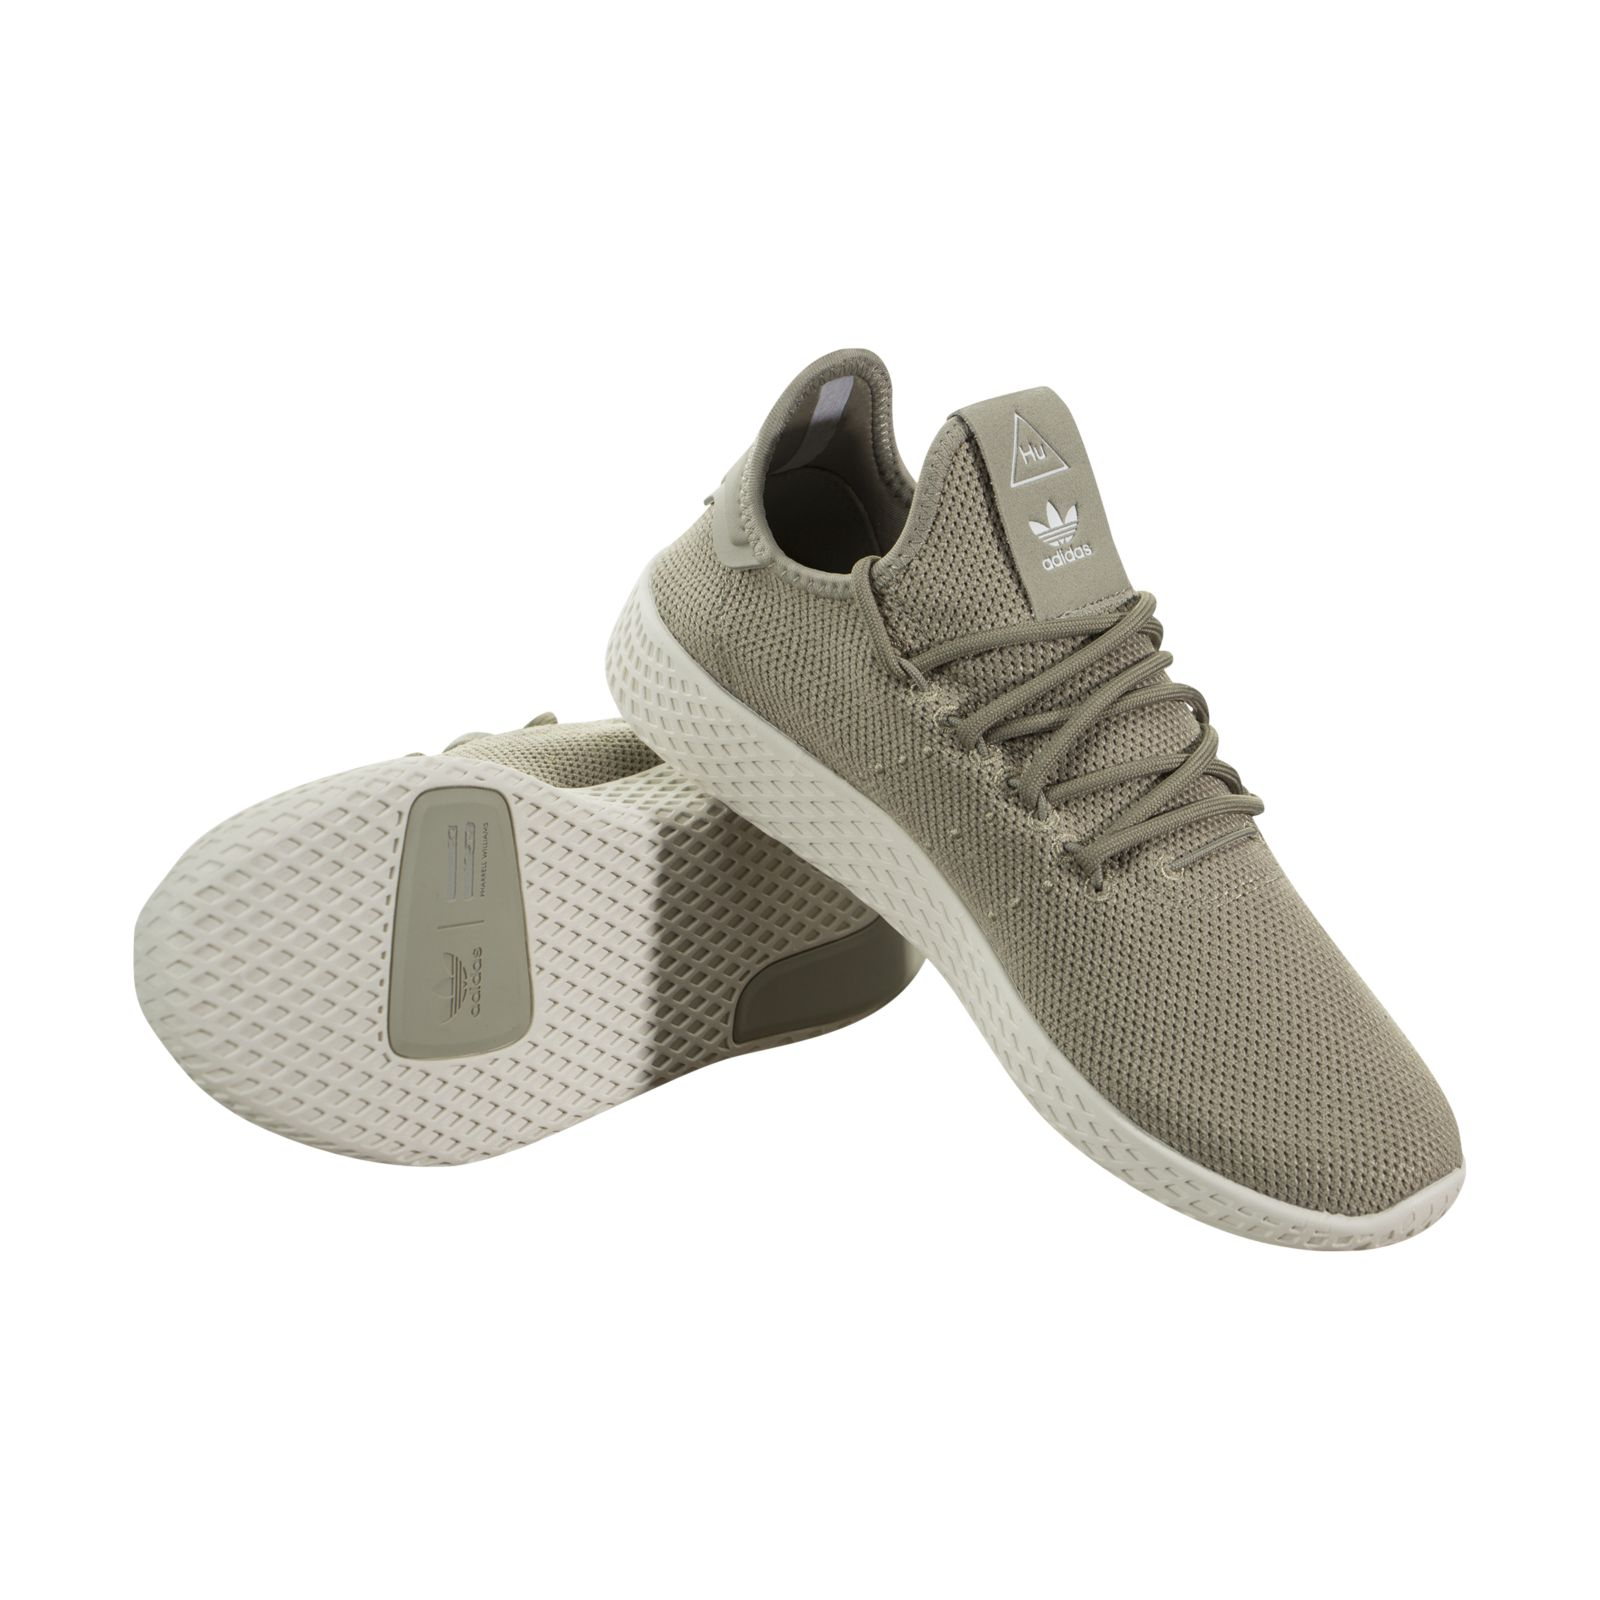 Large Selection Boys Shoes | Best Seller adidas Pharrell